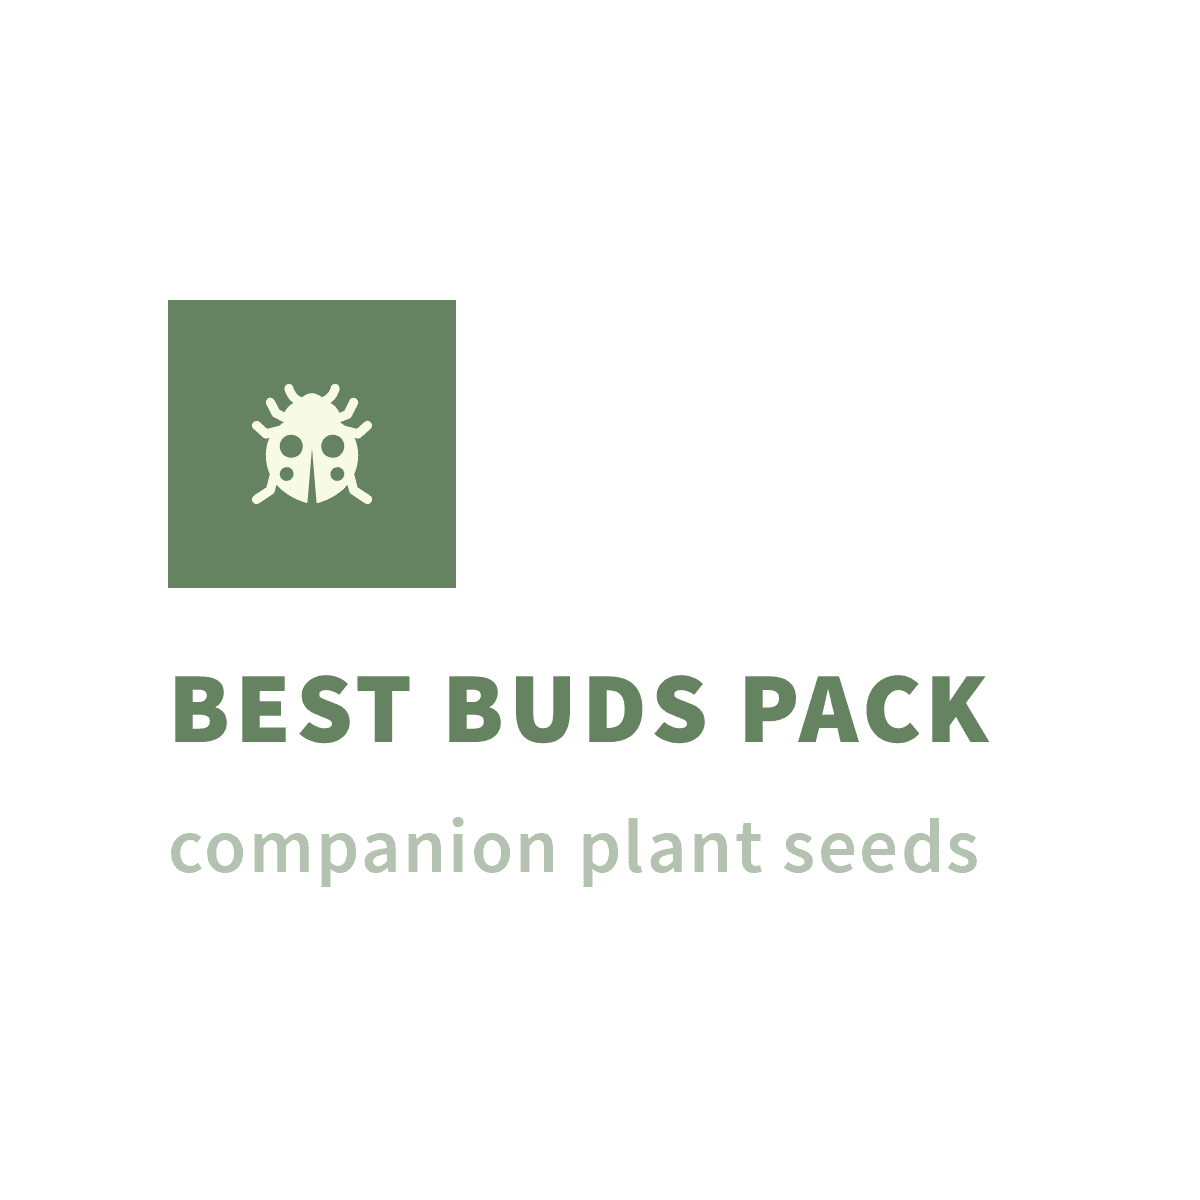 Repellant Pack - BEST BUDS PACK companion plant seeds MIX PACK